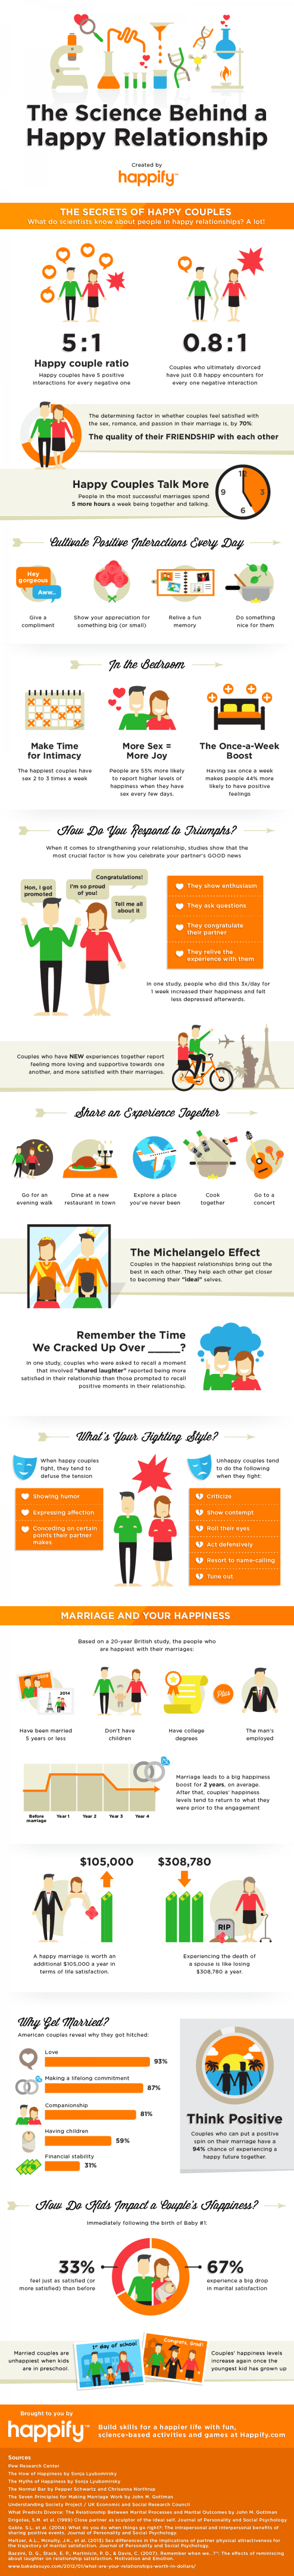 happy relationship infographic